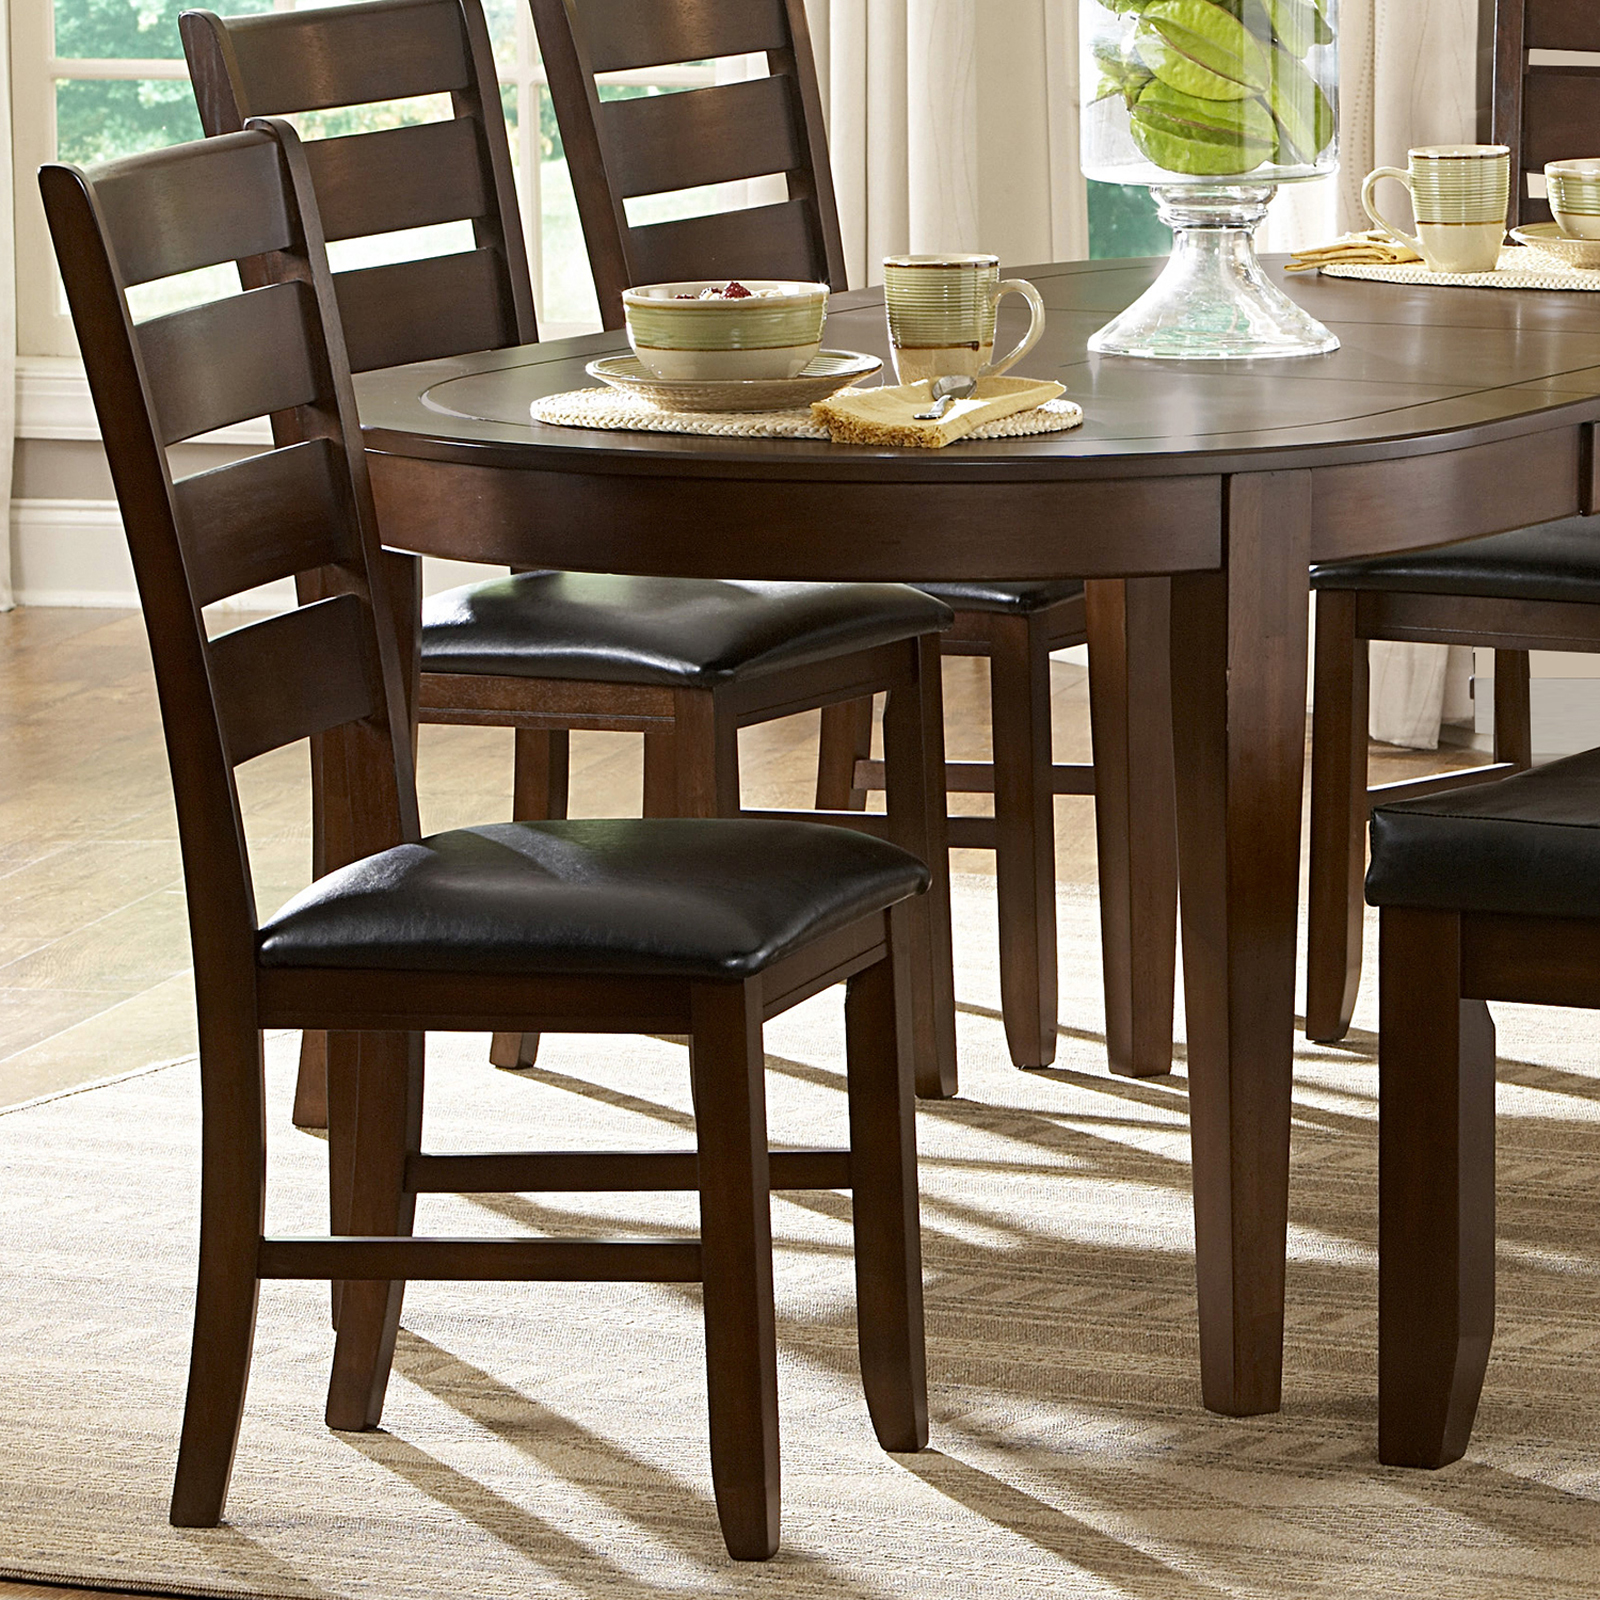 rubberwood butterfly table with 4 chairs bariatric rollator transport chair oxford creek albany 6 piece oval shape dining set - home furniture & kitchen ...